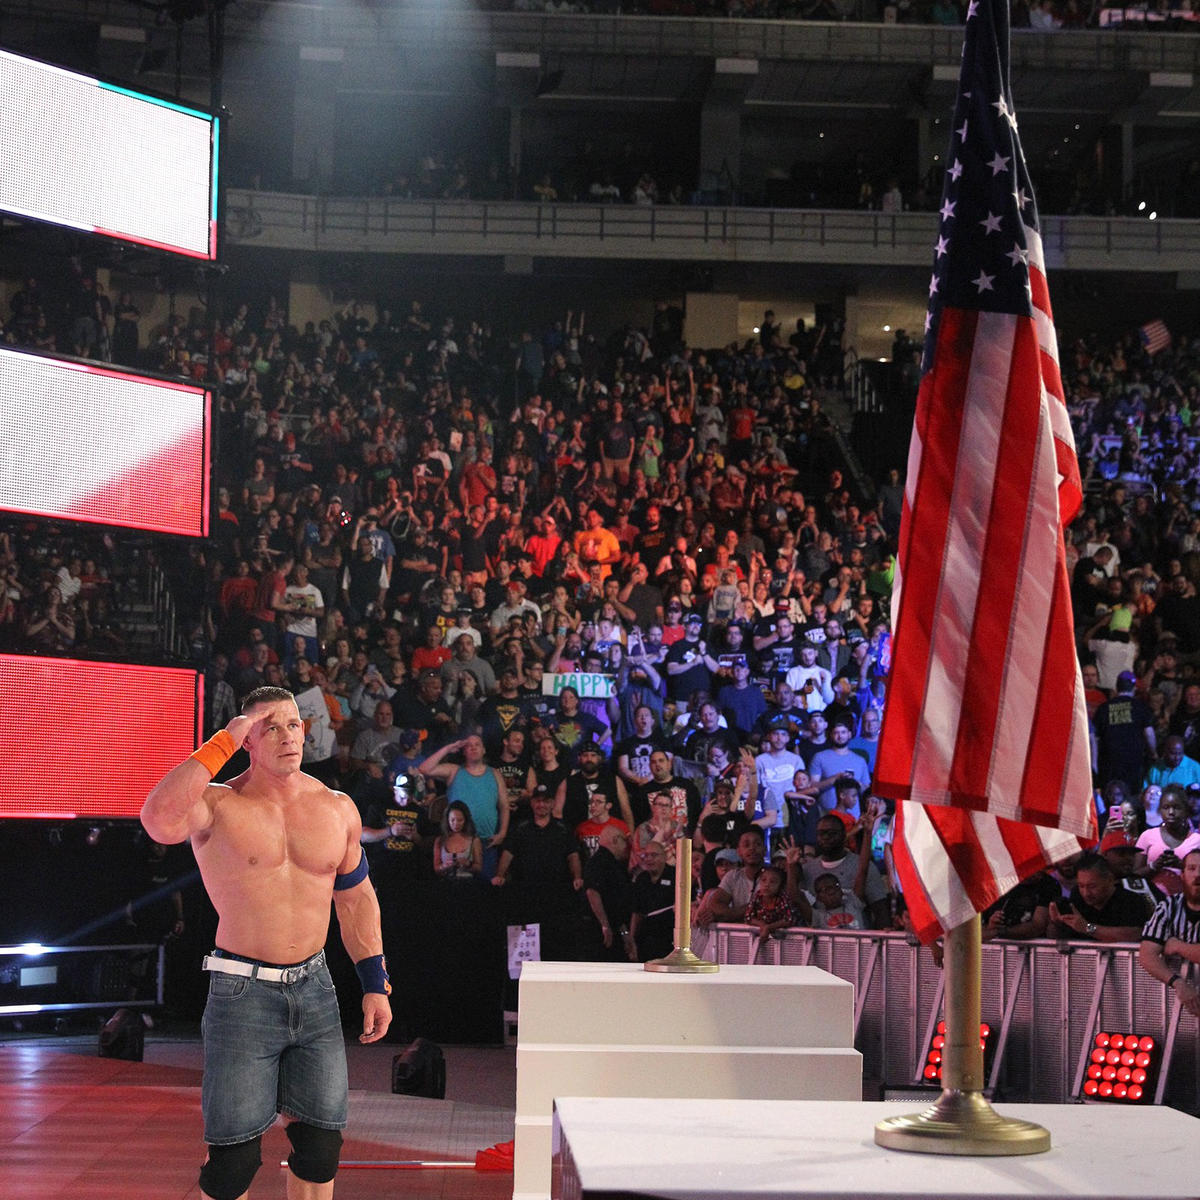 Cena salutes the stars and stripes before making his triumphant exit.